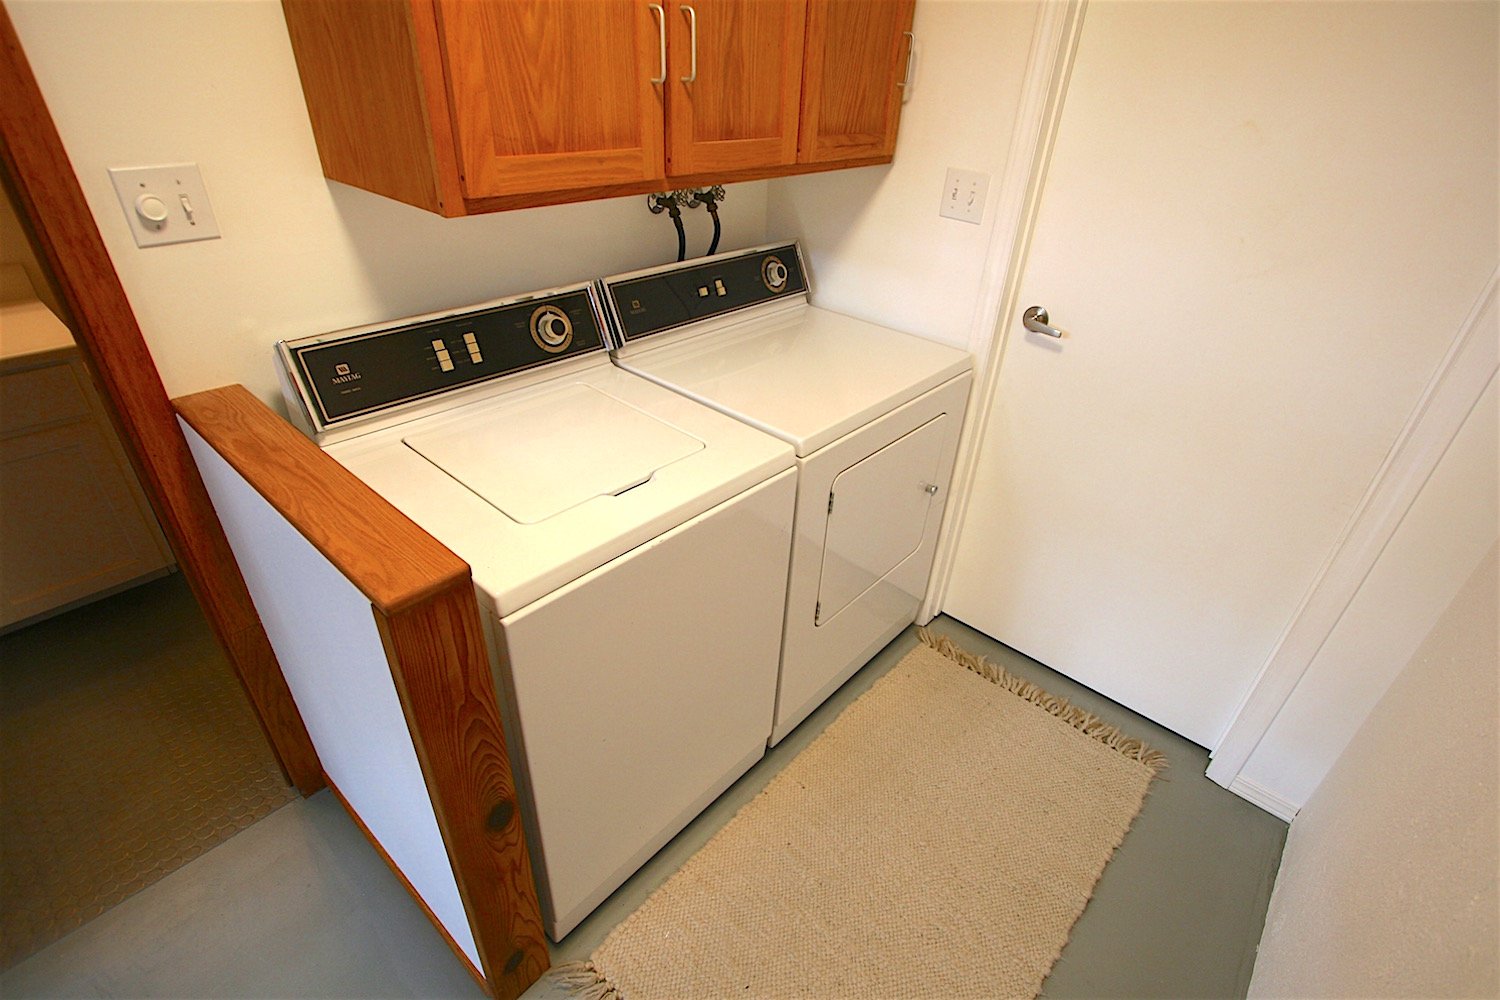 The laundry area and doorway to the utility room... adjacent to the lower bath.